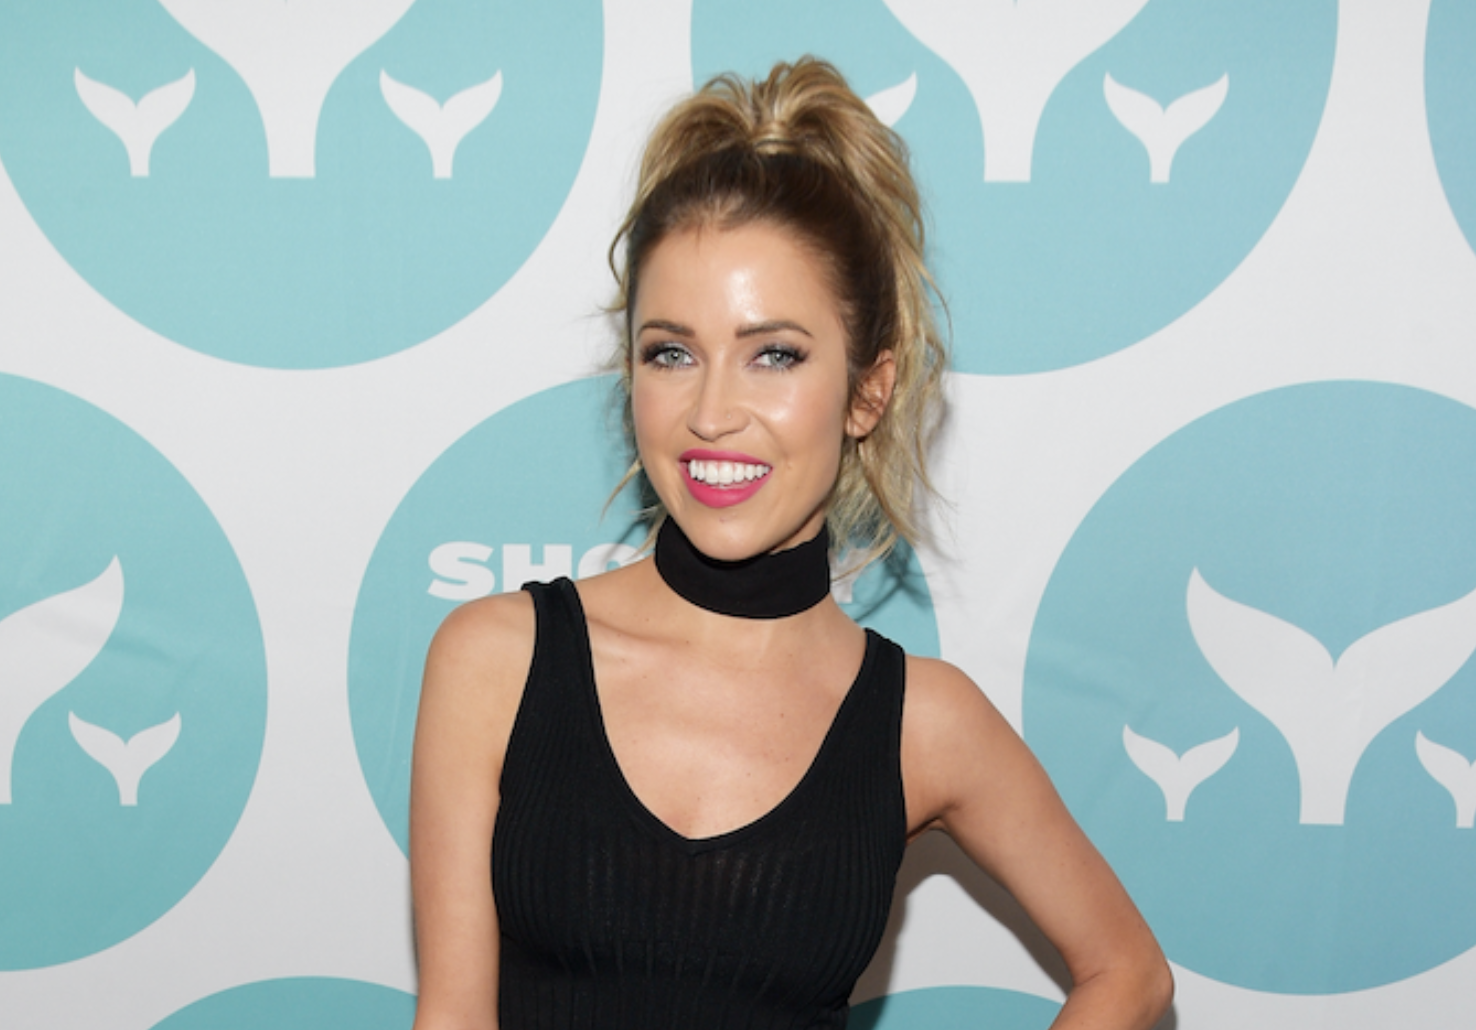 Kaitlyn Bristowe Says Shawn Booth Forget Their Anniversary